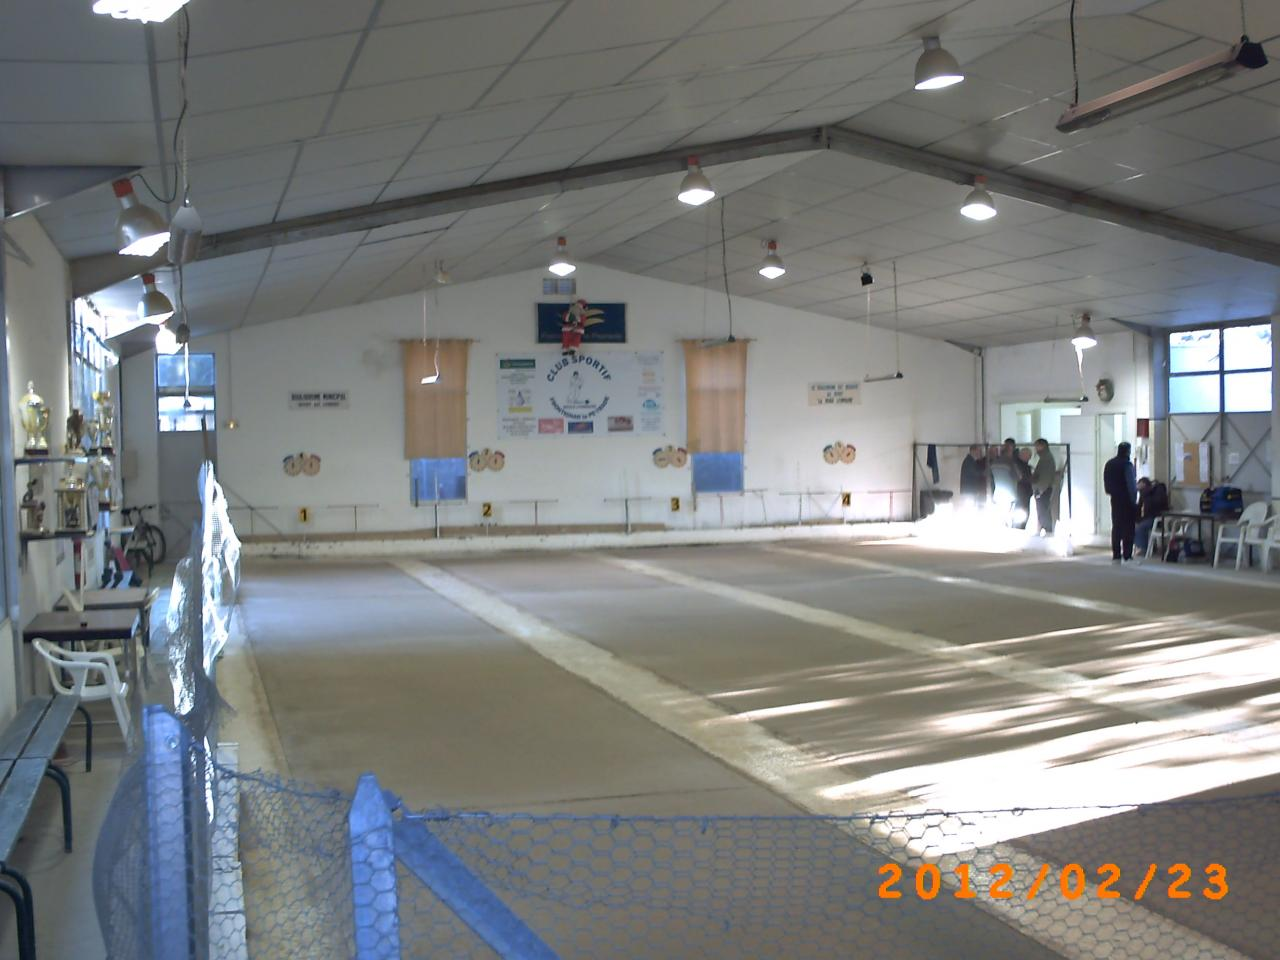 Boulodromes couverts for Boulodrome montpellier